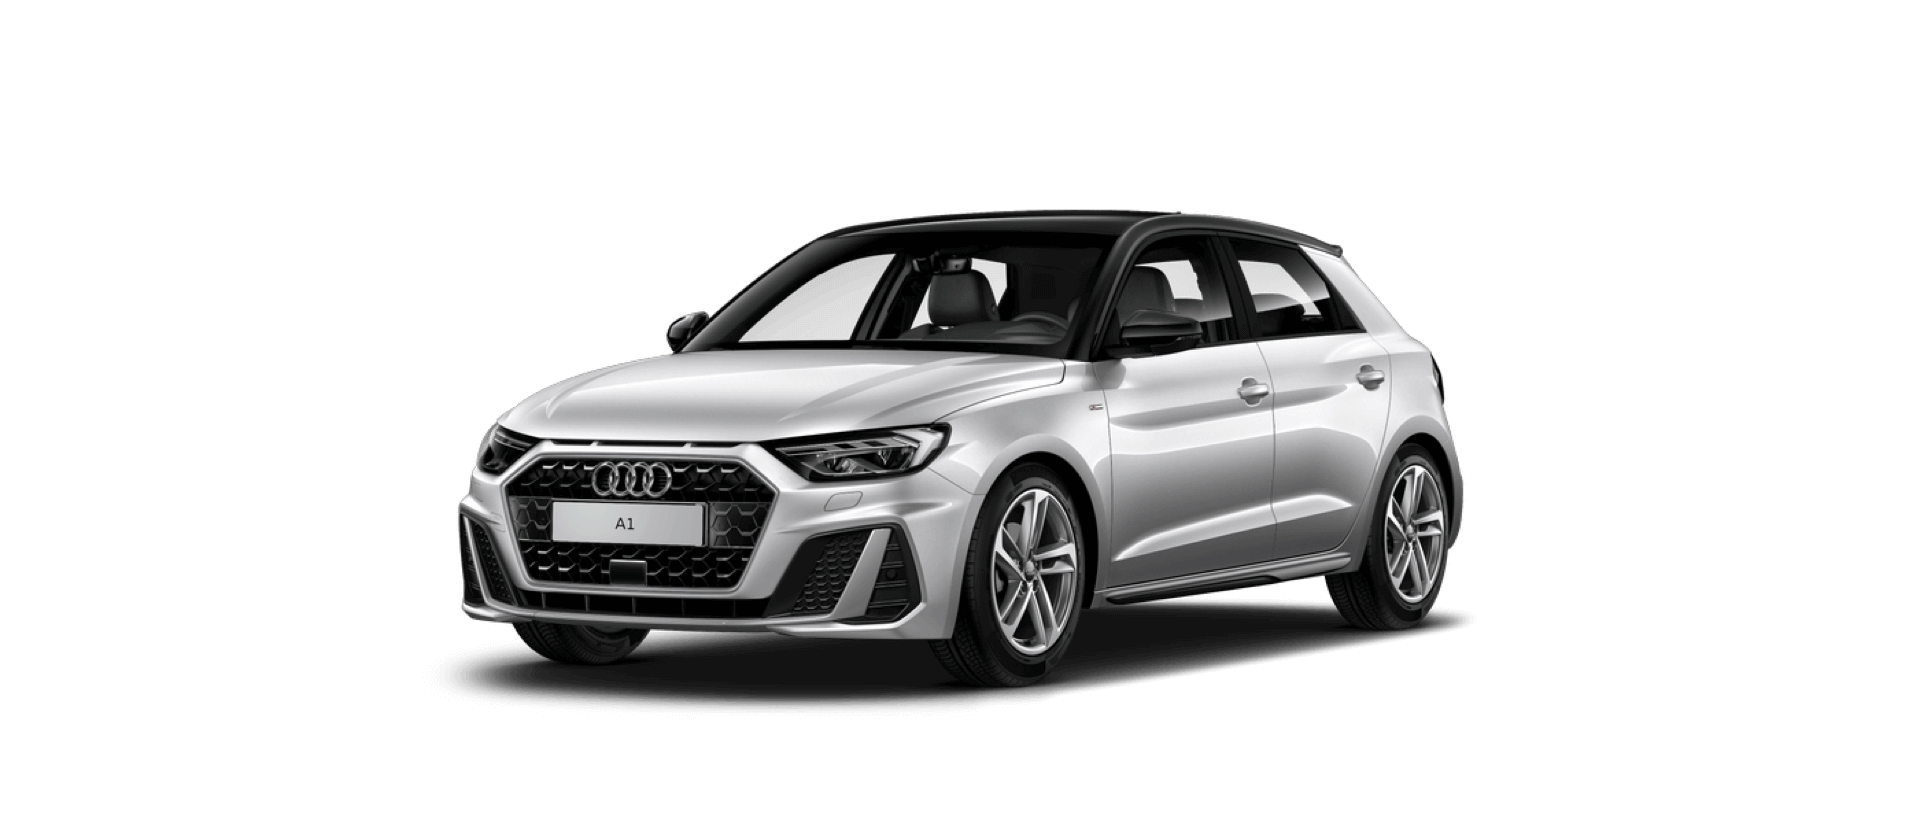 Audi A1 - NTT Audi - New, Used & Demo Cars for Sale in South Africa